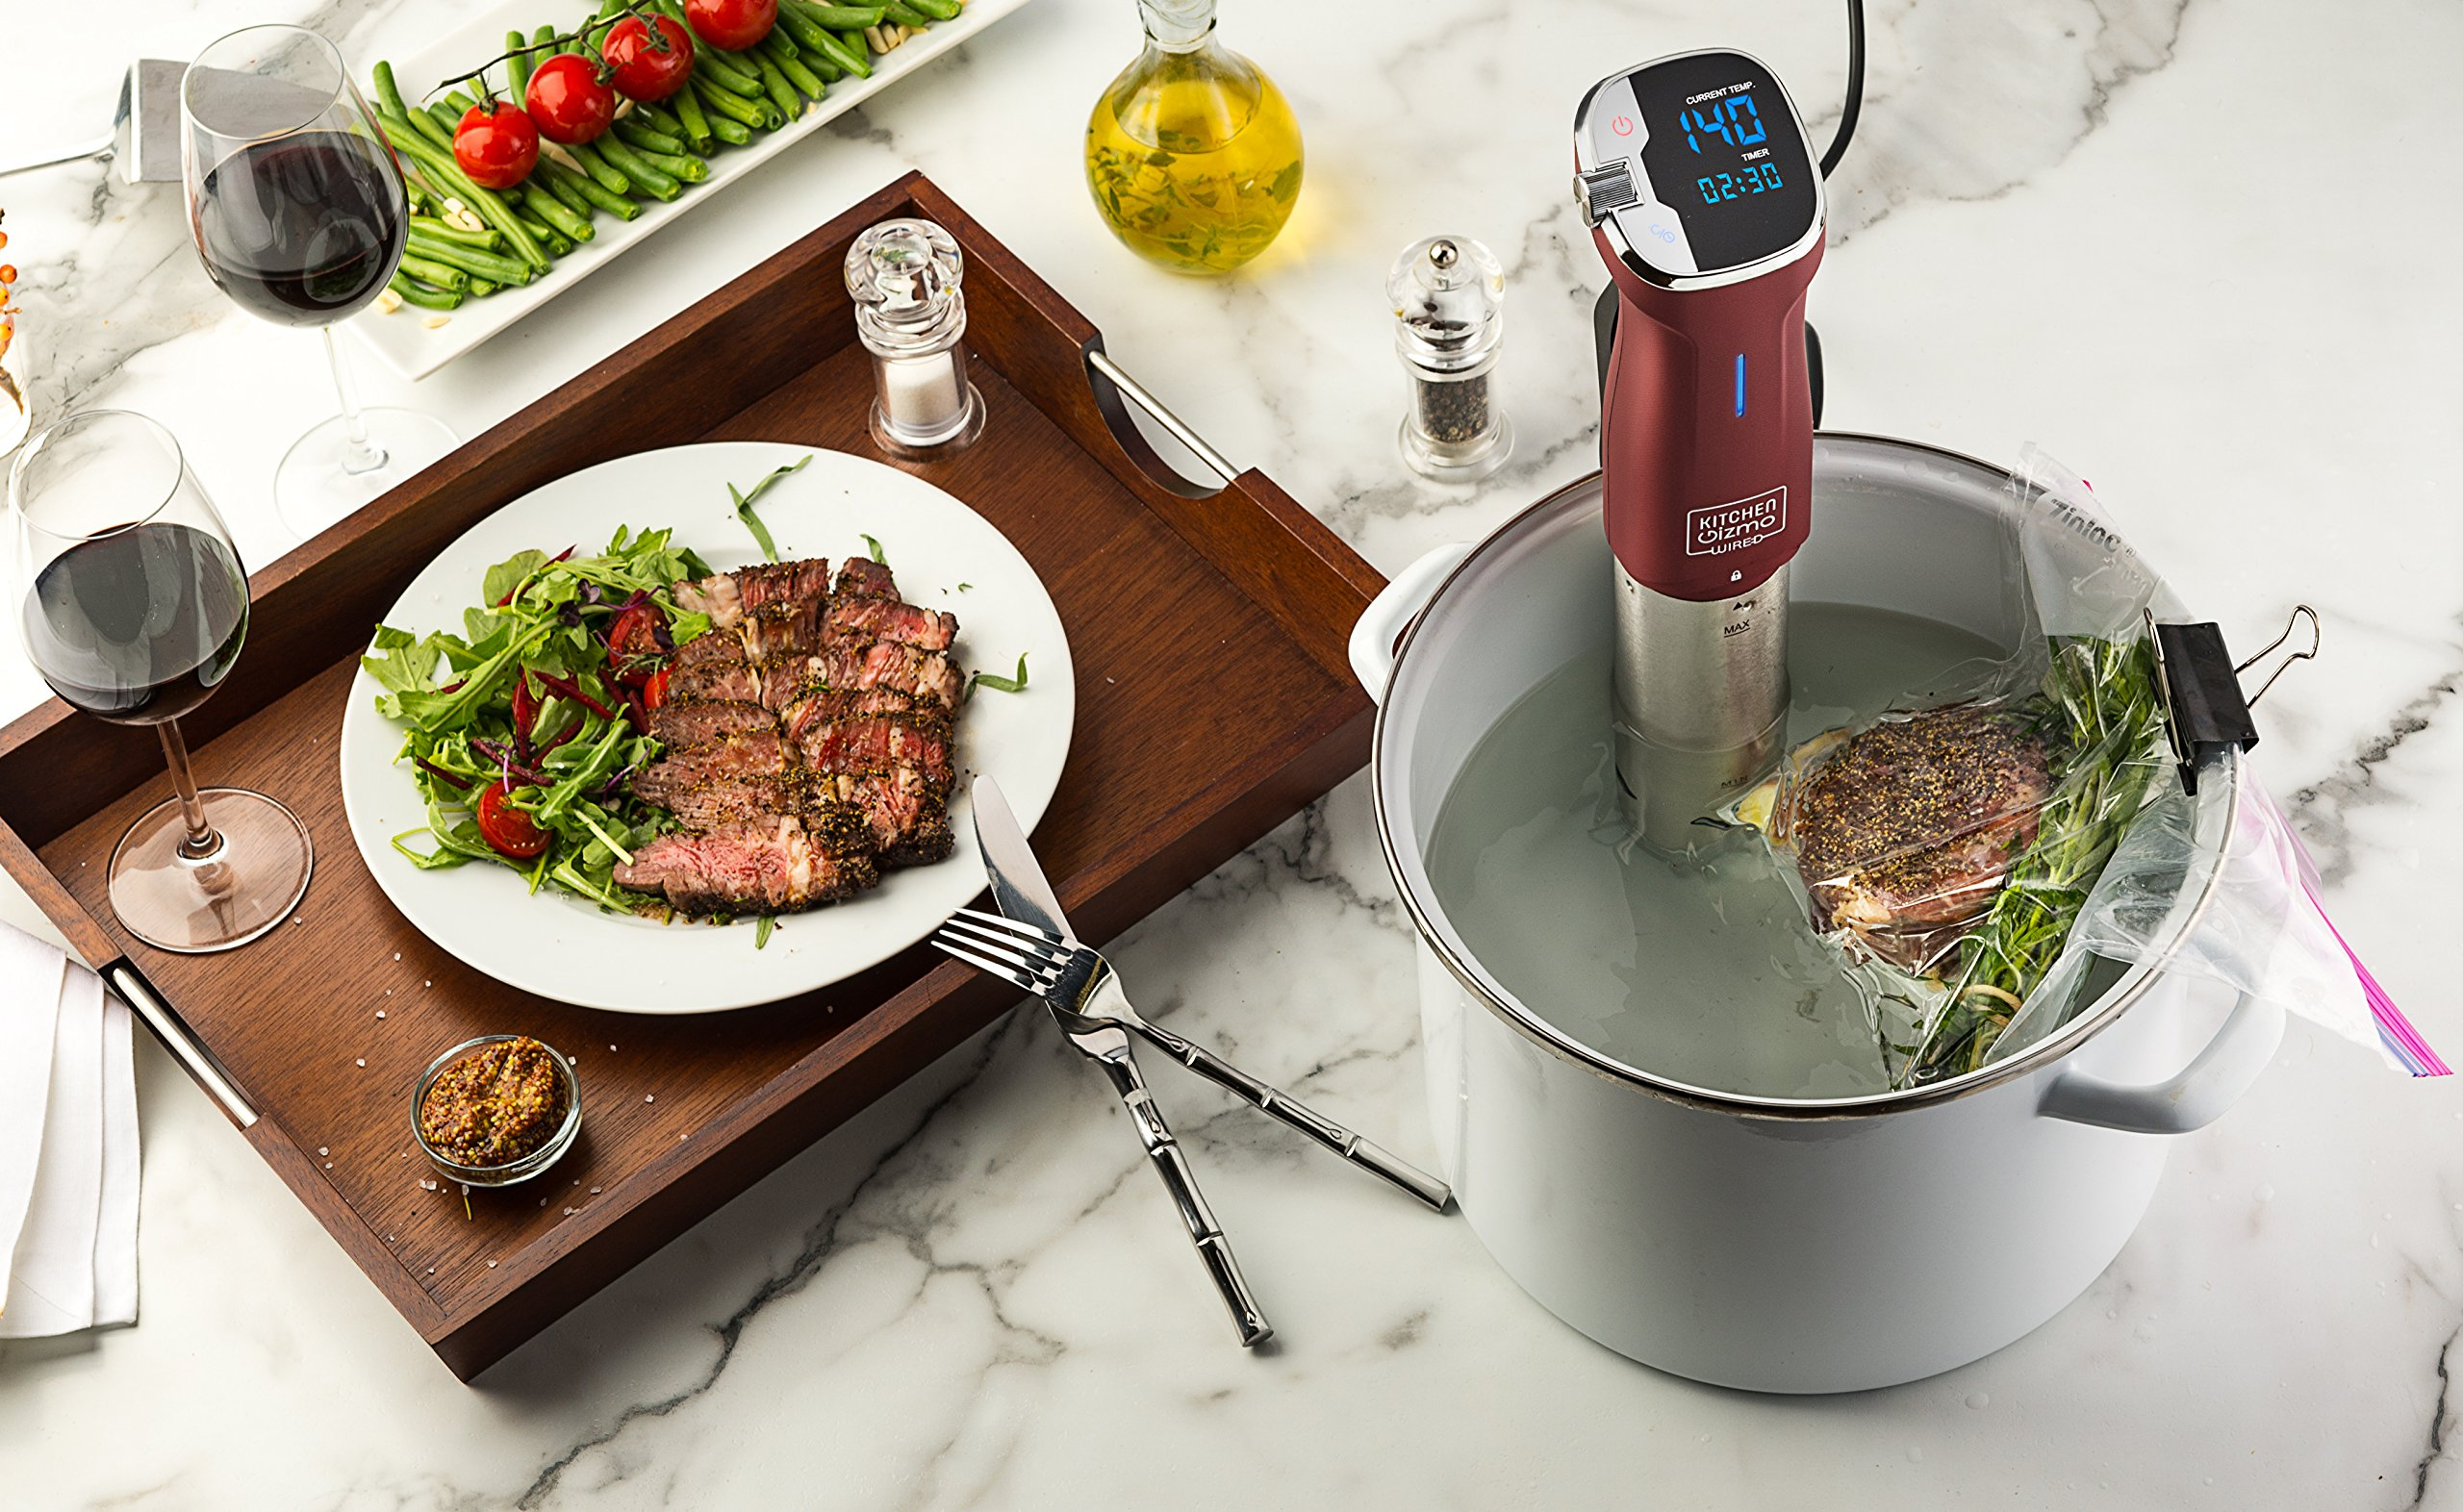 Kitchen Gizmo Sous Vide Immersion Circulator - Cook with Precision, 800 Watt Grey Circulator Stick with Touchscreen Control Panel and Safety Feature - Bonus Recipe Book Included by Kitchen Gizmo (Image #5)